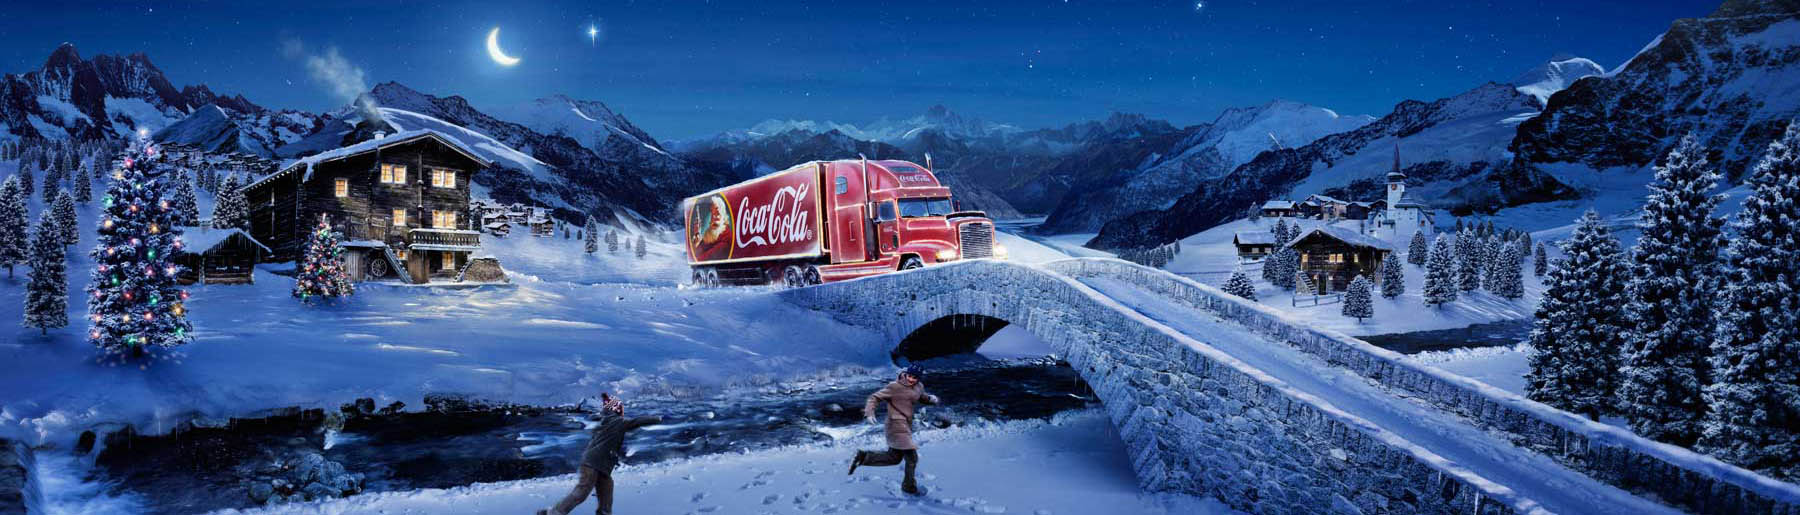 The holiday adverts are coming Advertising Association